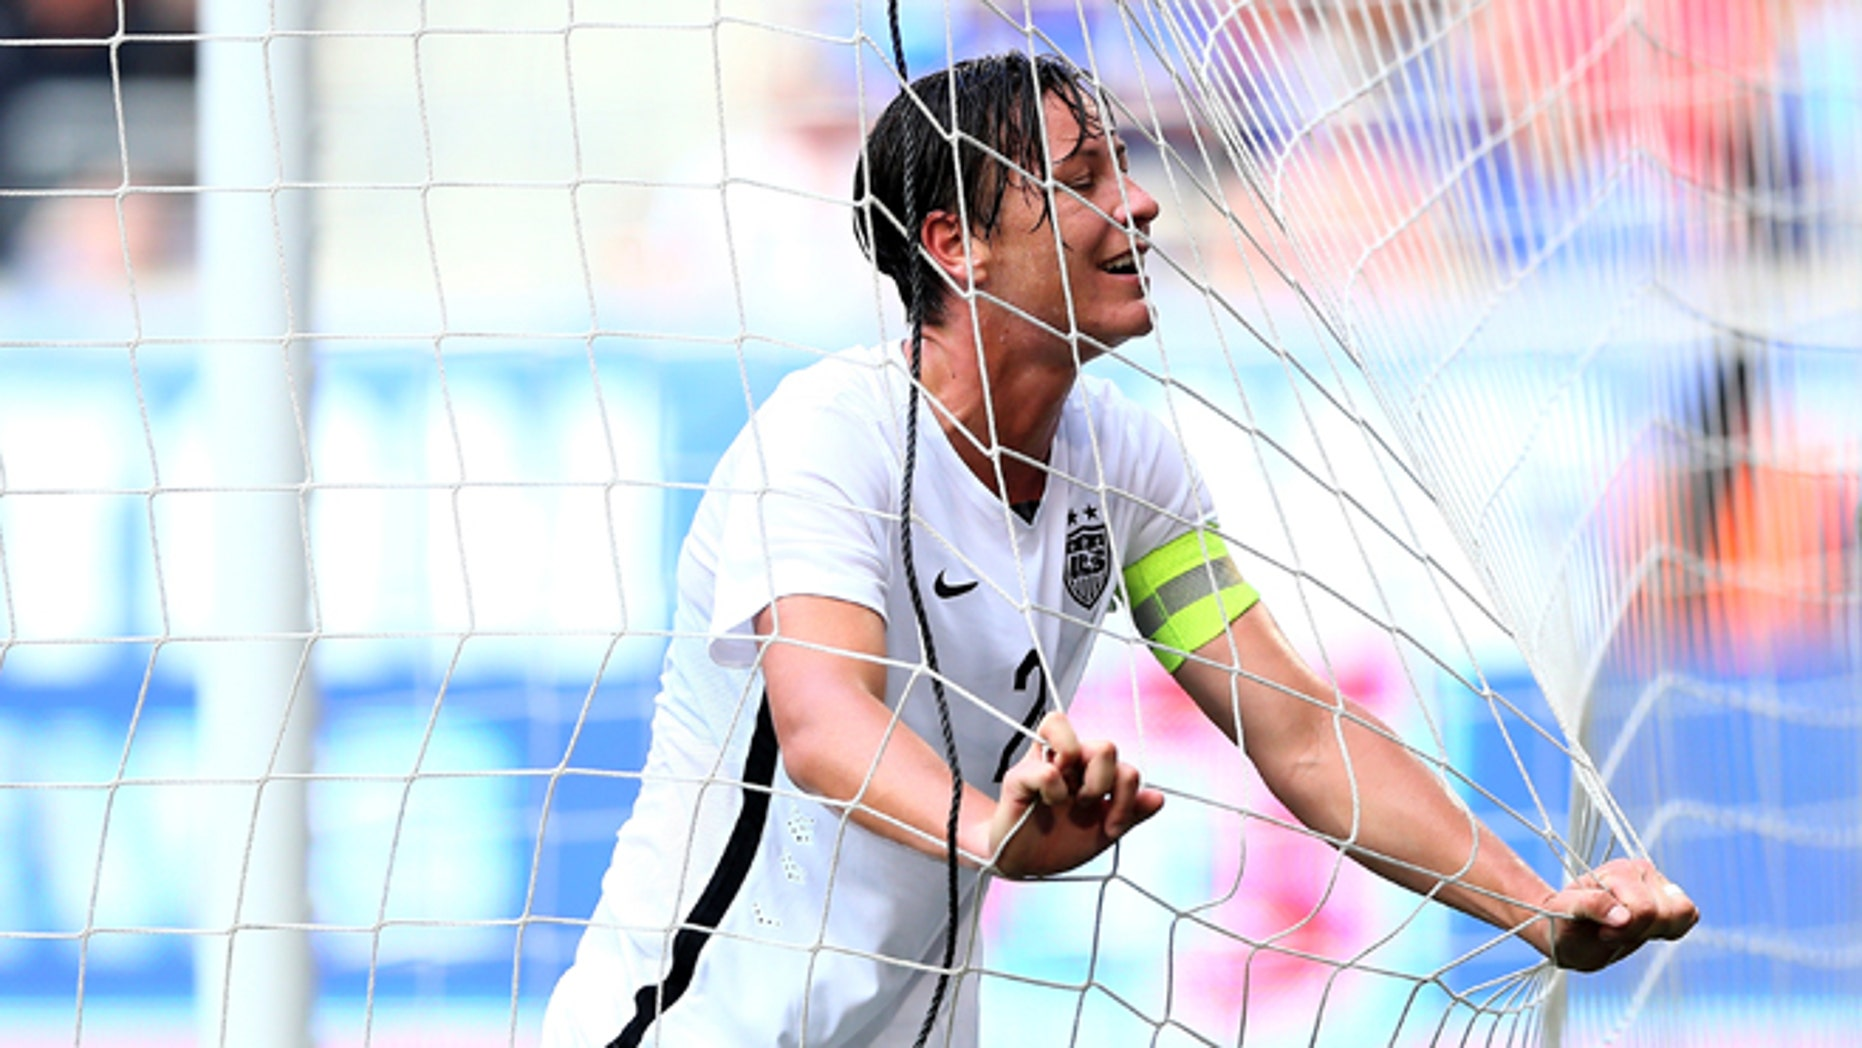 HARRISON, NJ - MAY 30:  Abby Wambach #20 of United States reacts after missing a shot in the first half against South Korea during their international friendly match at Red Bull Arena on May 30, 2015 in Harrison, New Jersey.  (Photo by Elsa/Getty Images)